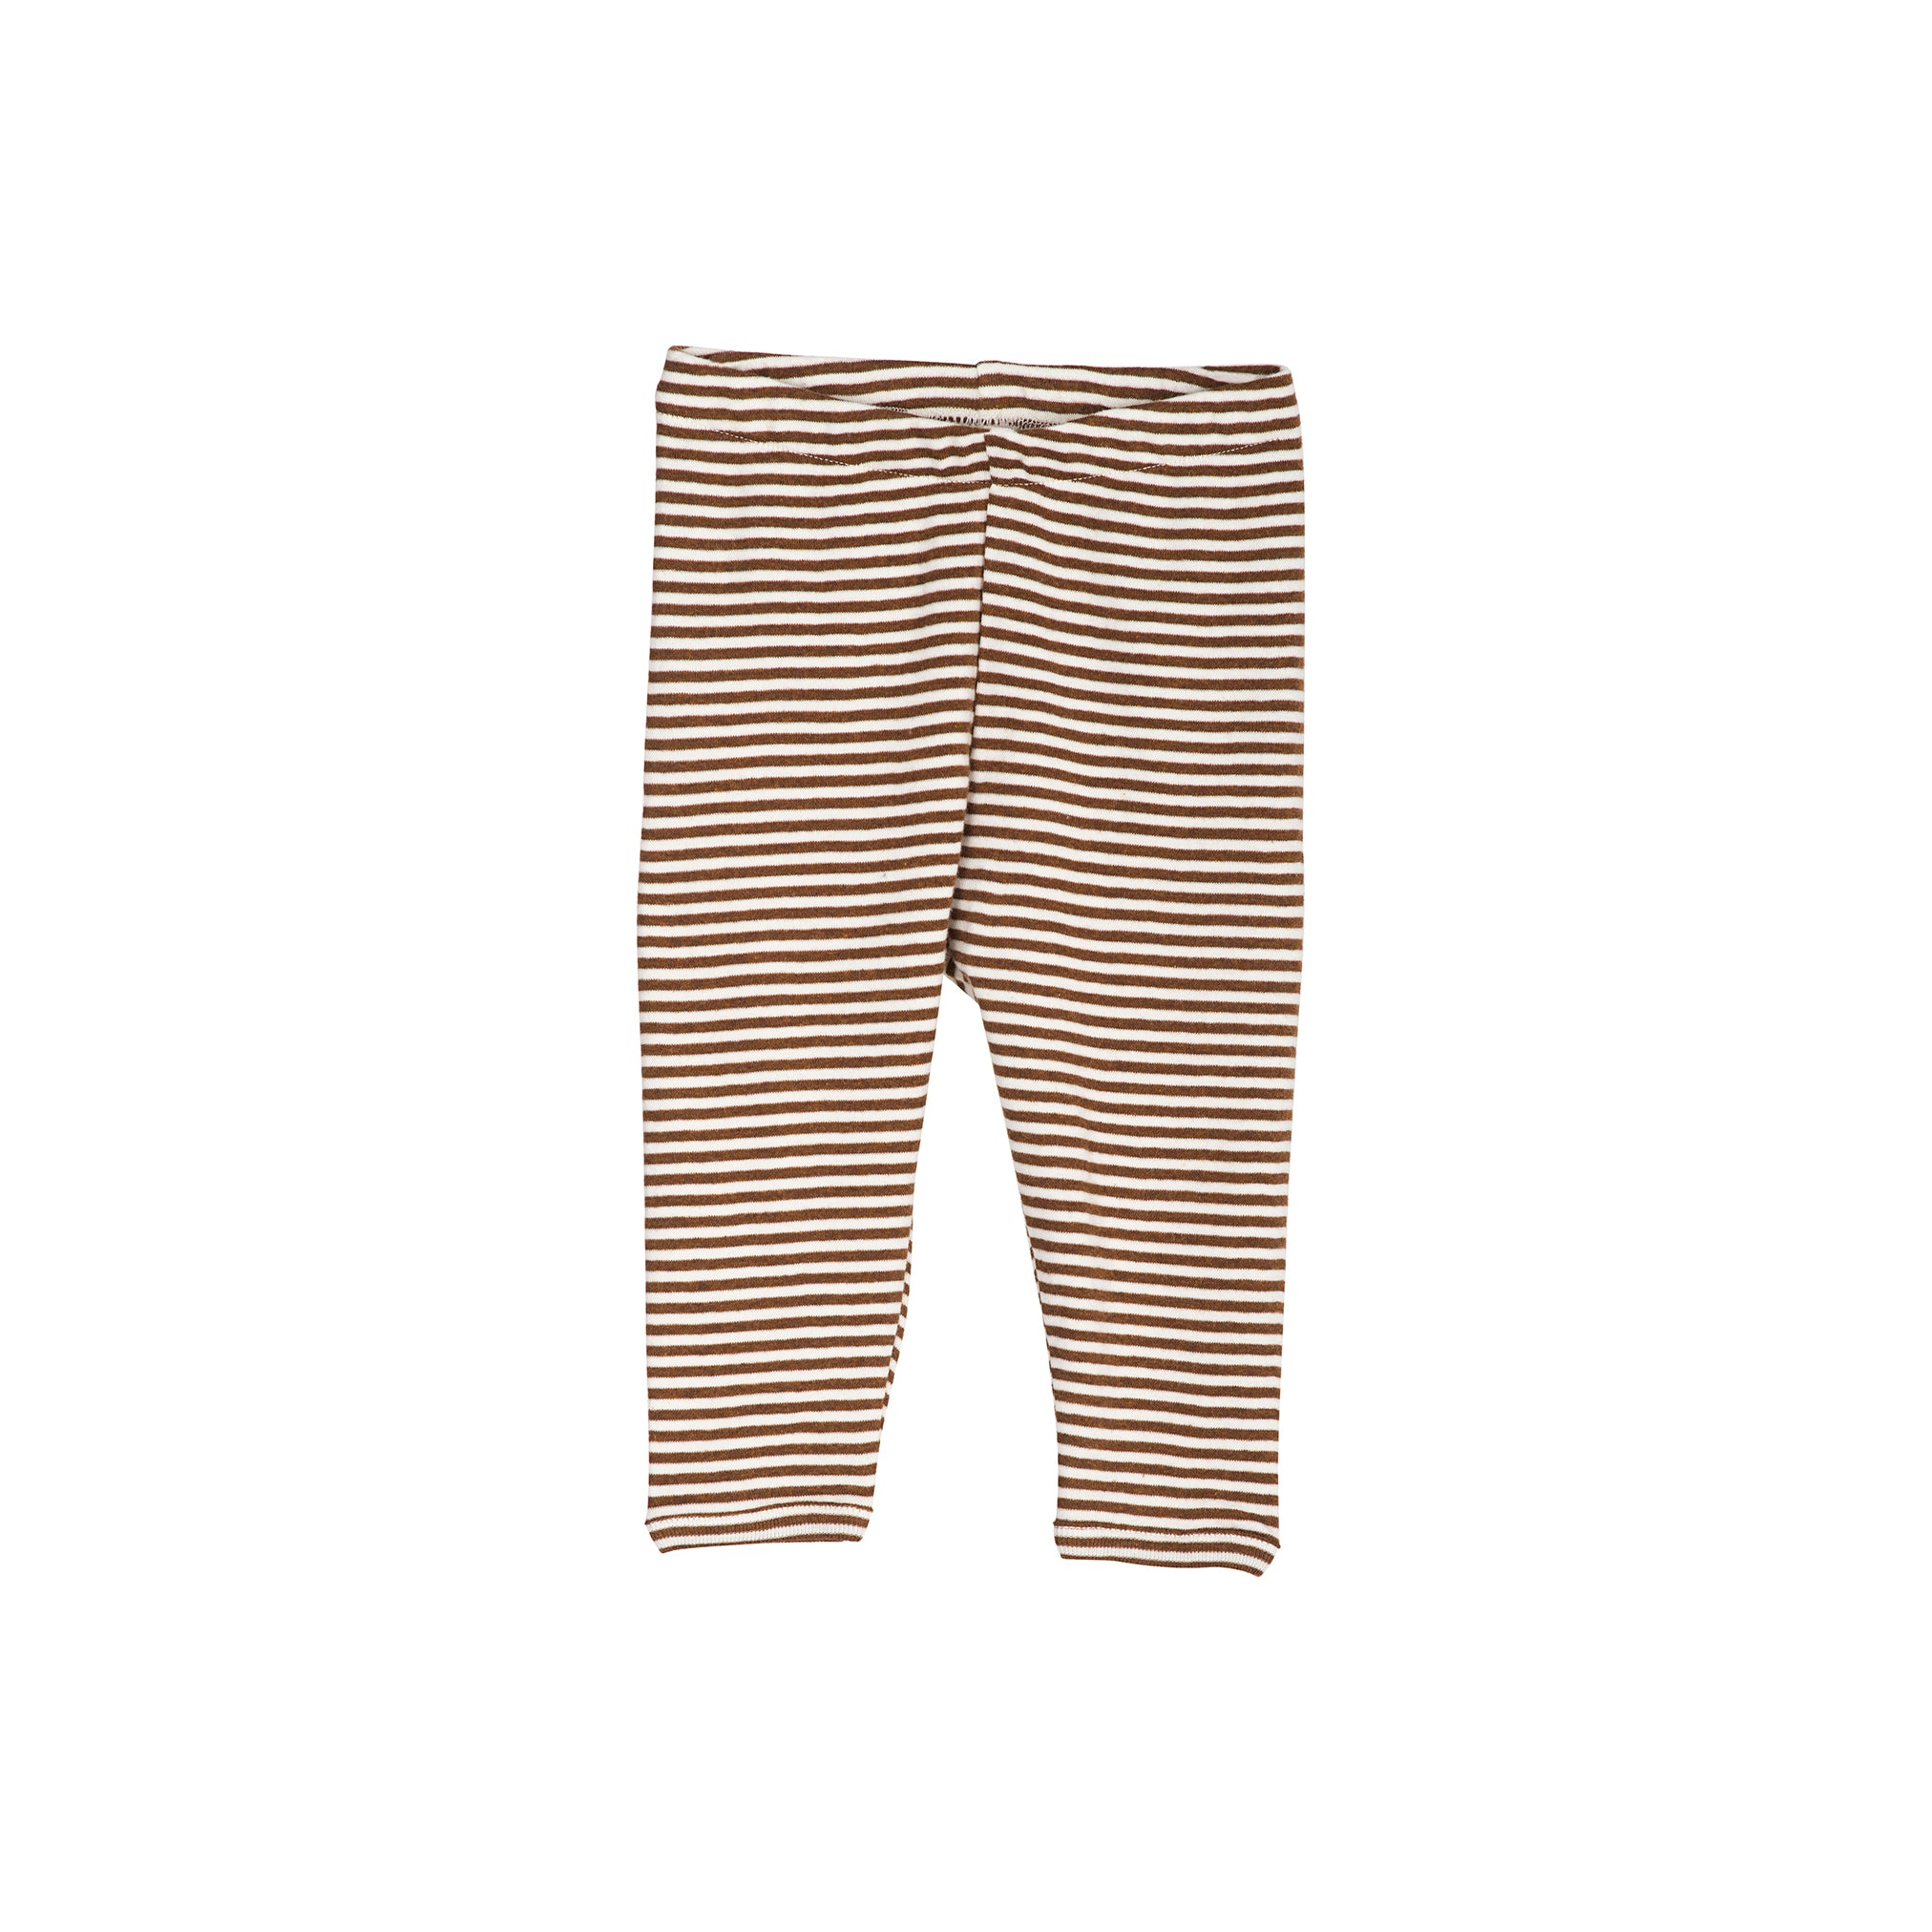 Serendipity Baby Leggings - Stribet Caramel